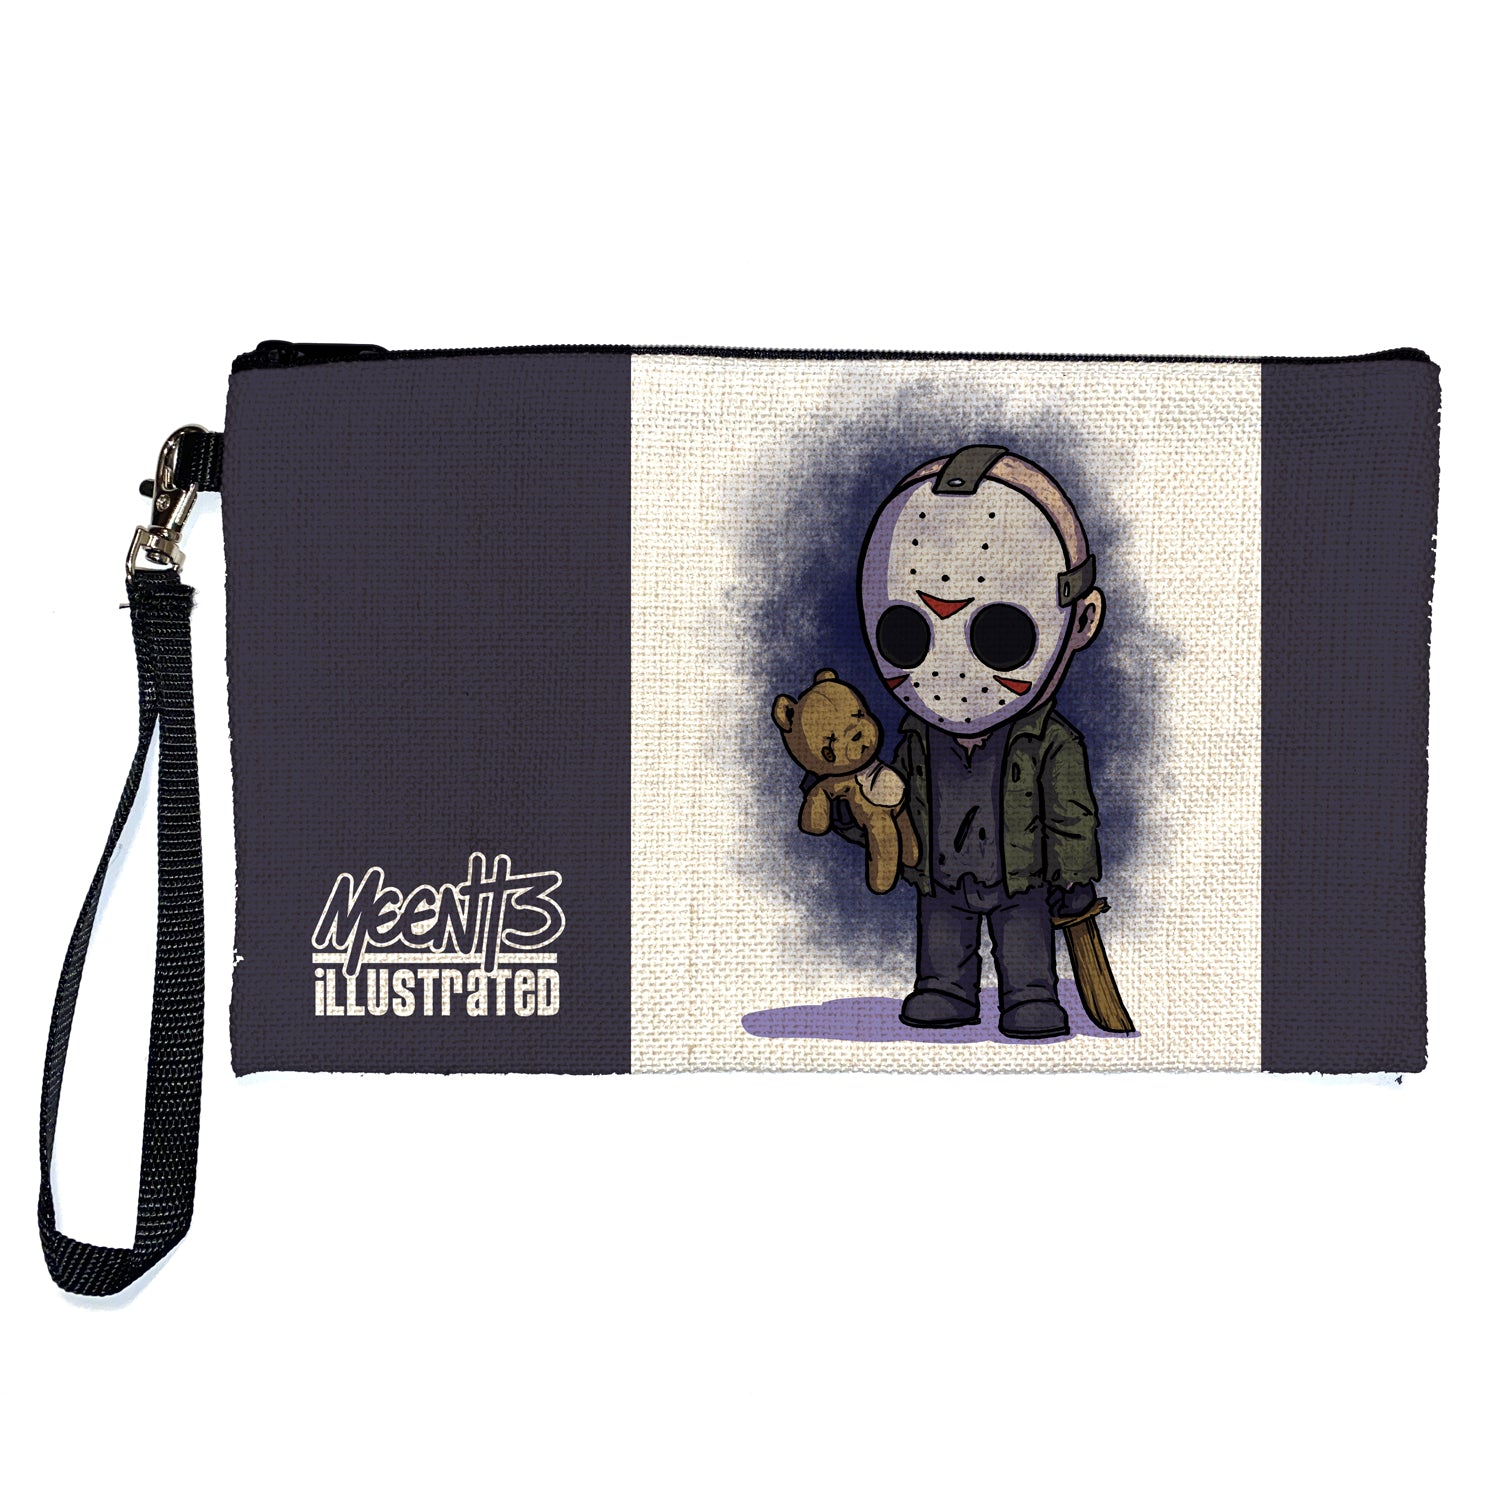 Jason - Character - Large Pencil/Device Bag